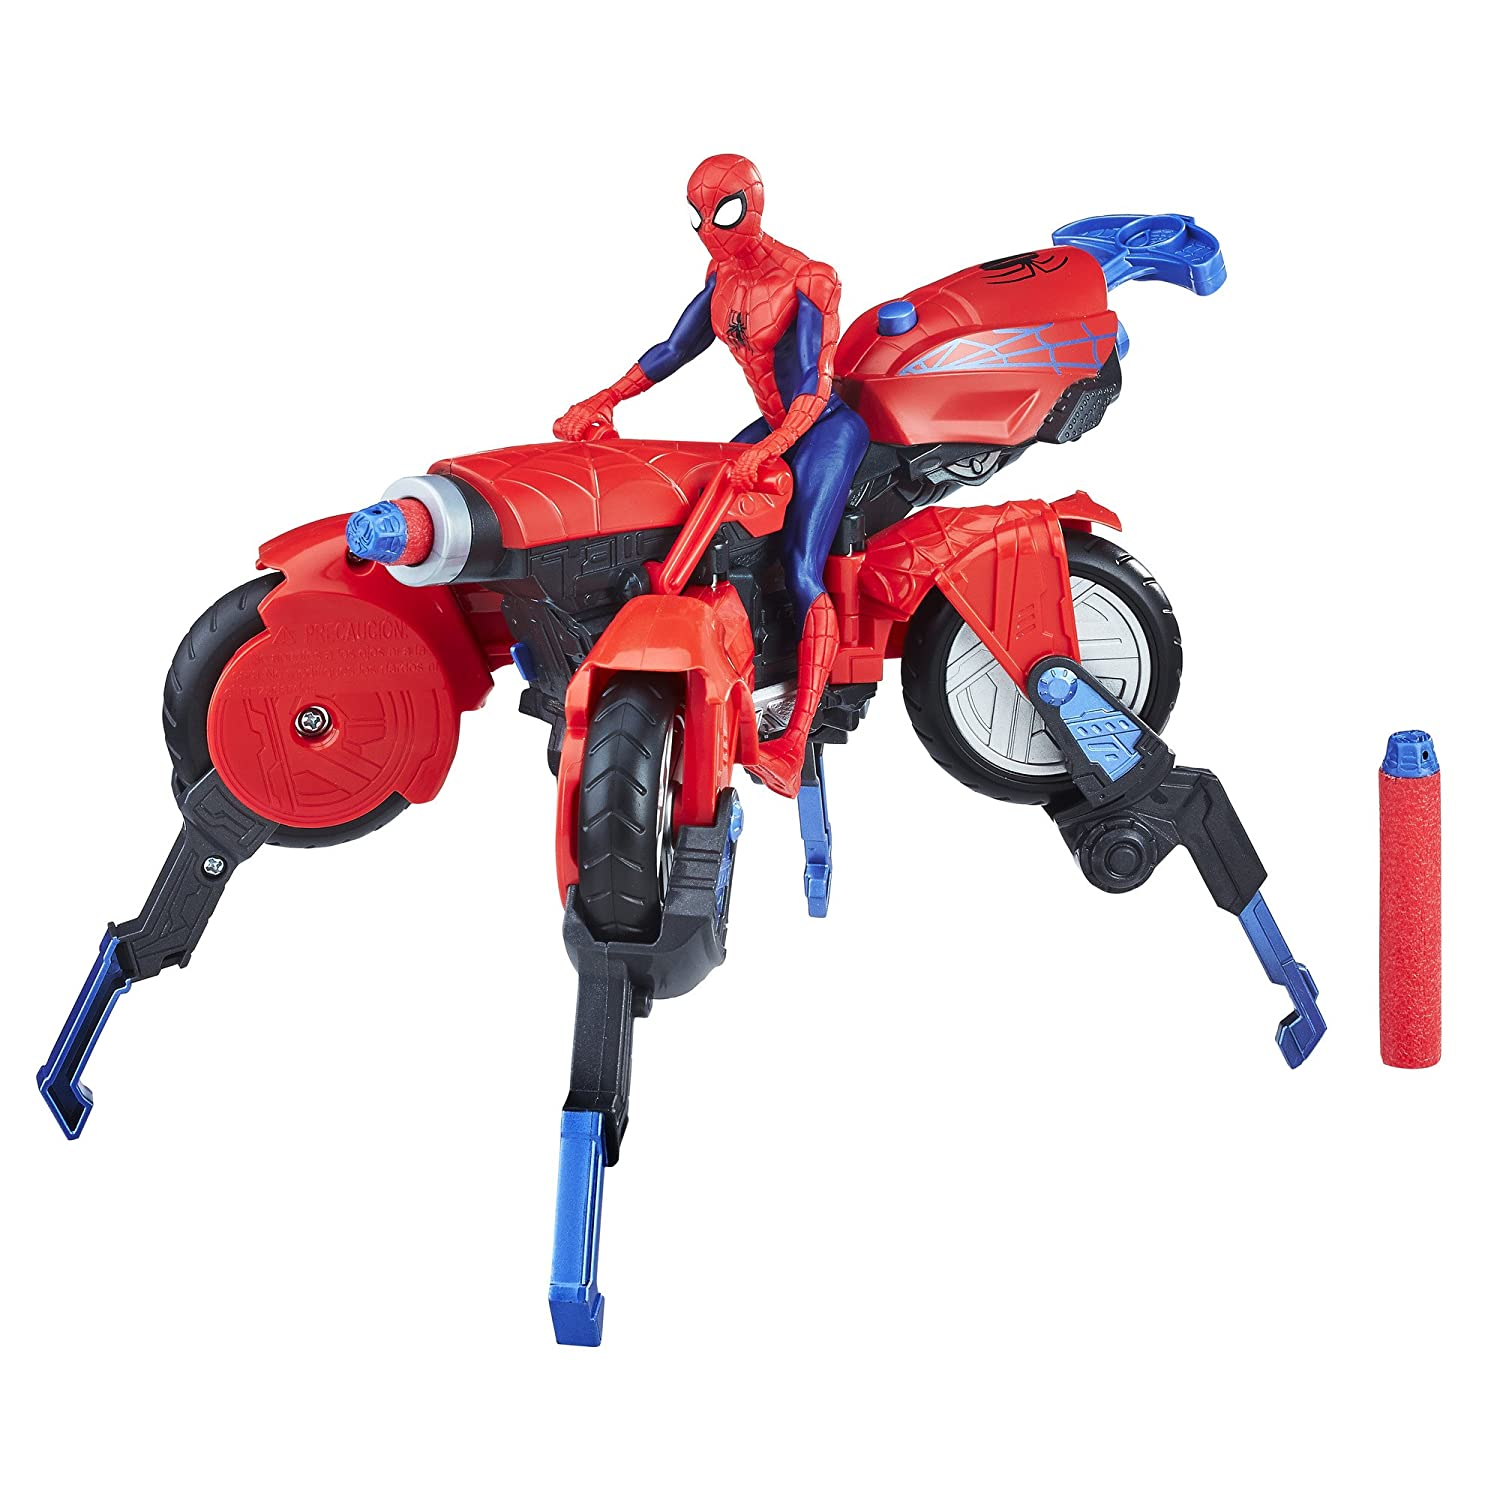 Marvel Spider-Man 3-in-1 Spider Cycle with Spider-Man Figure Hasbro E0593